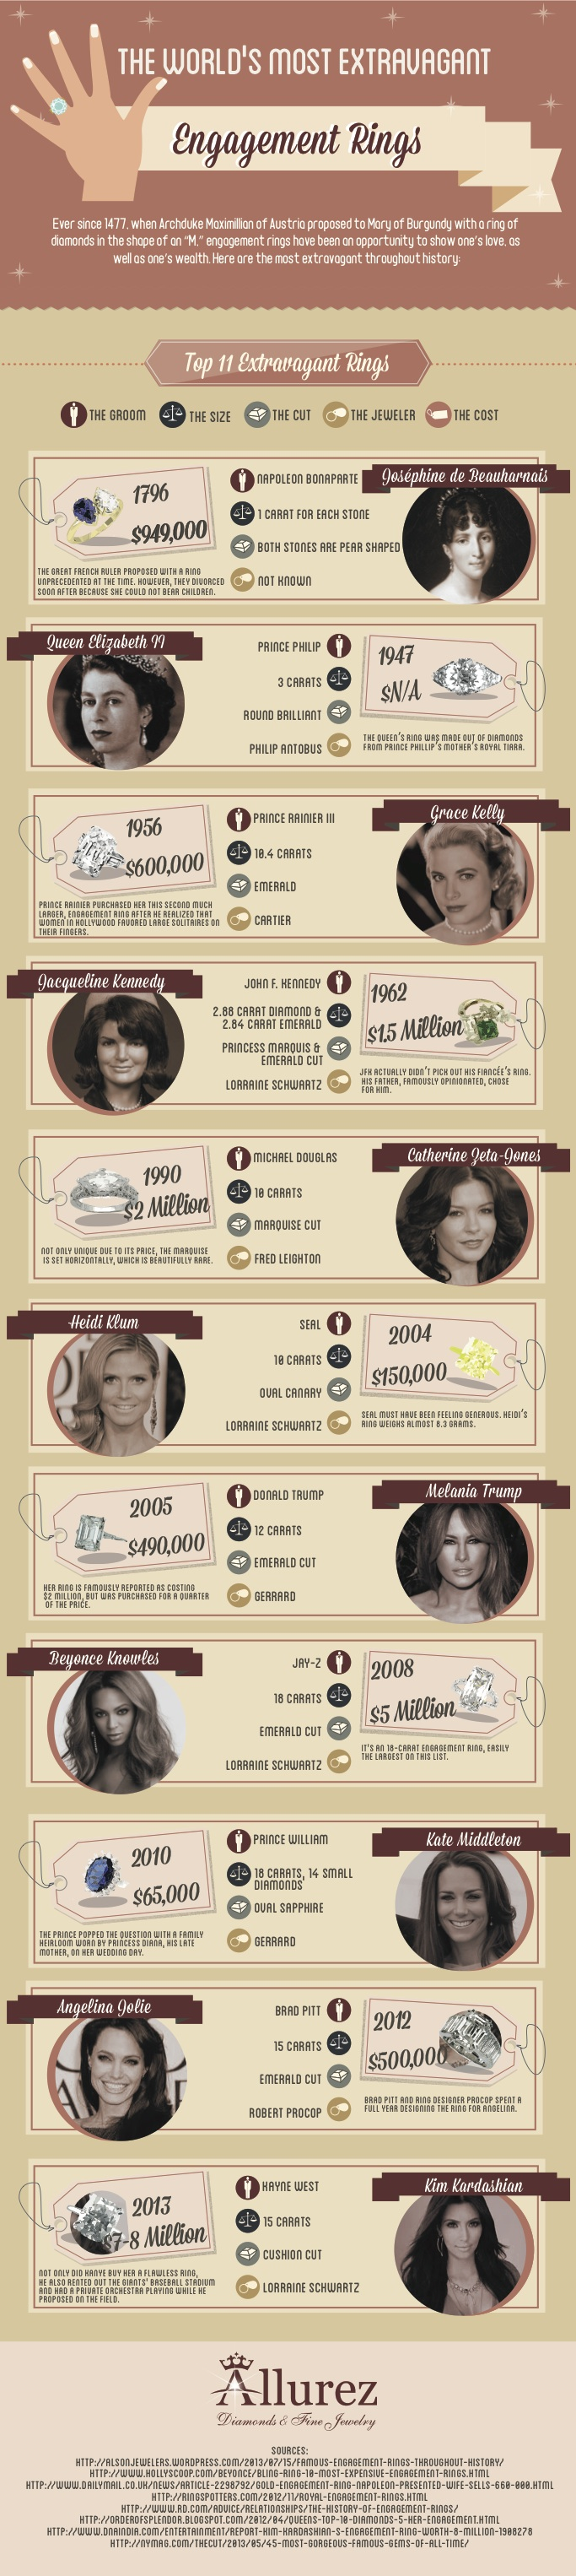 Extravagant Engagement Rings Infographic From Allurez